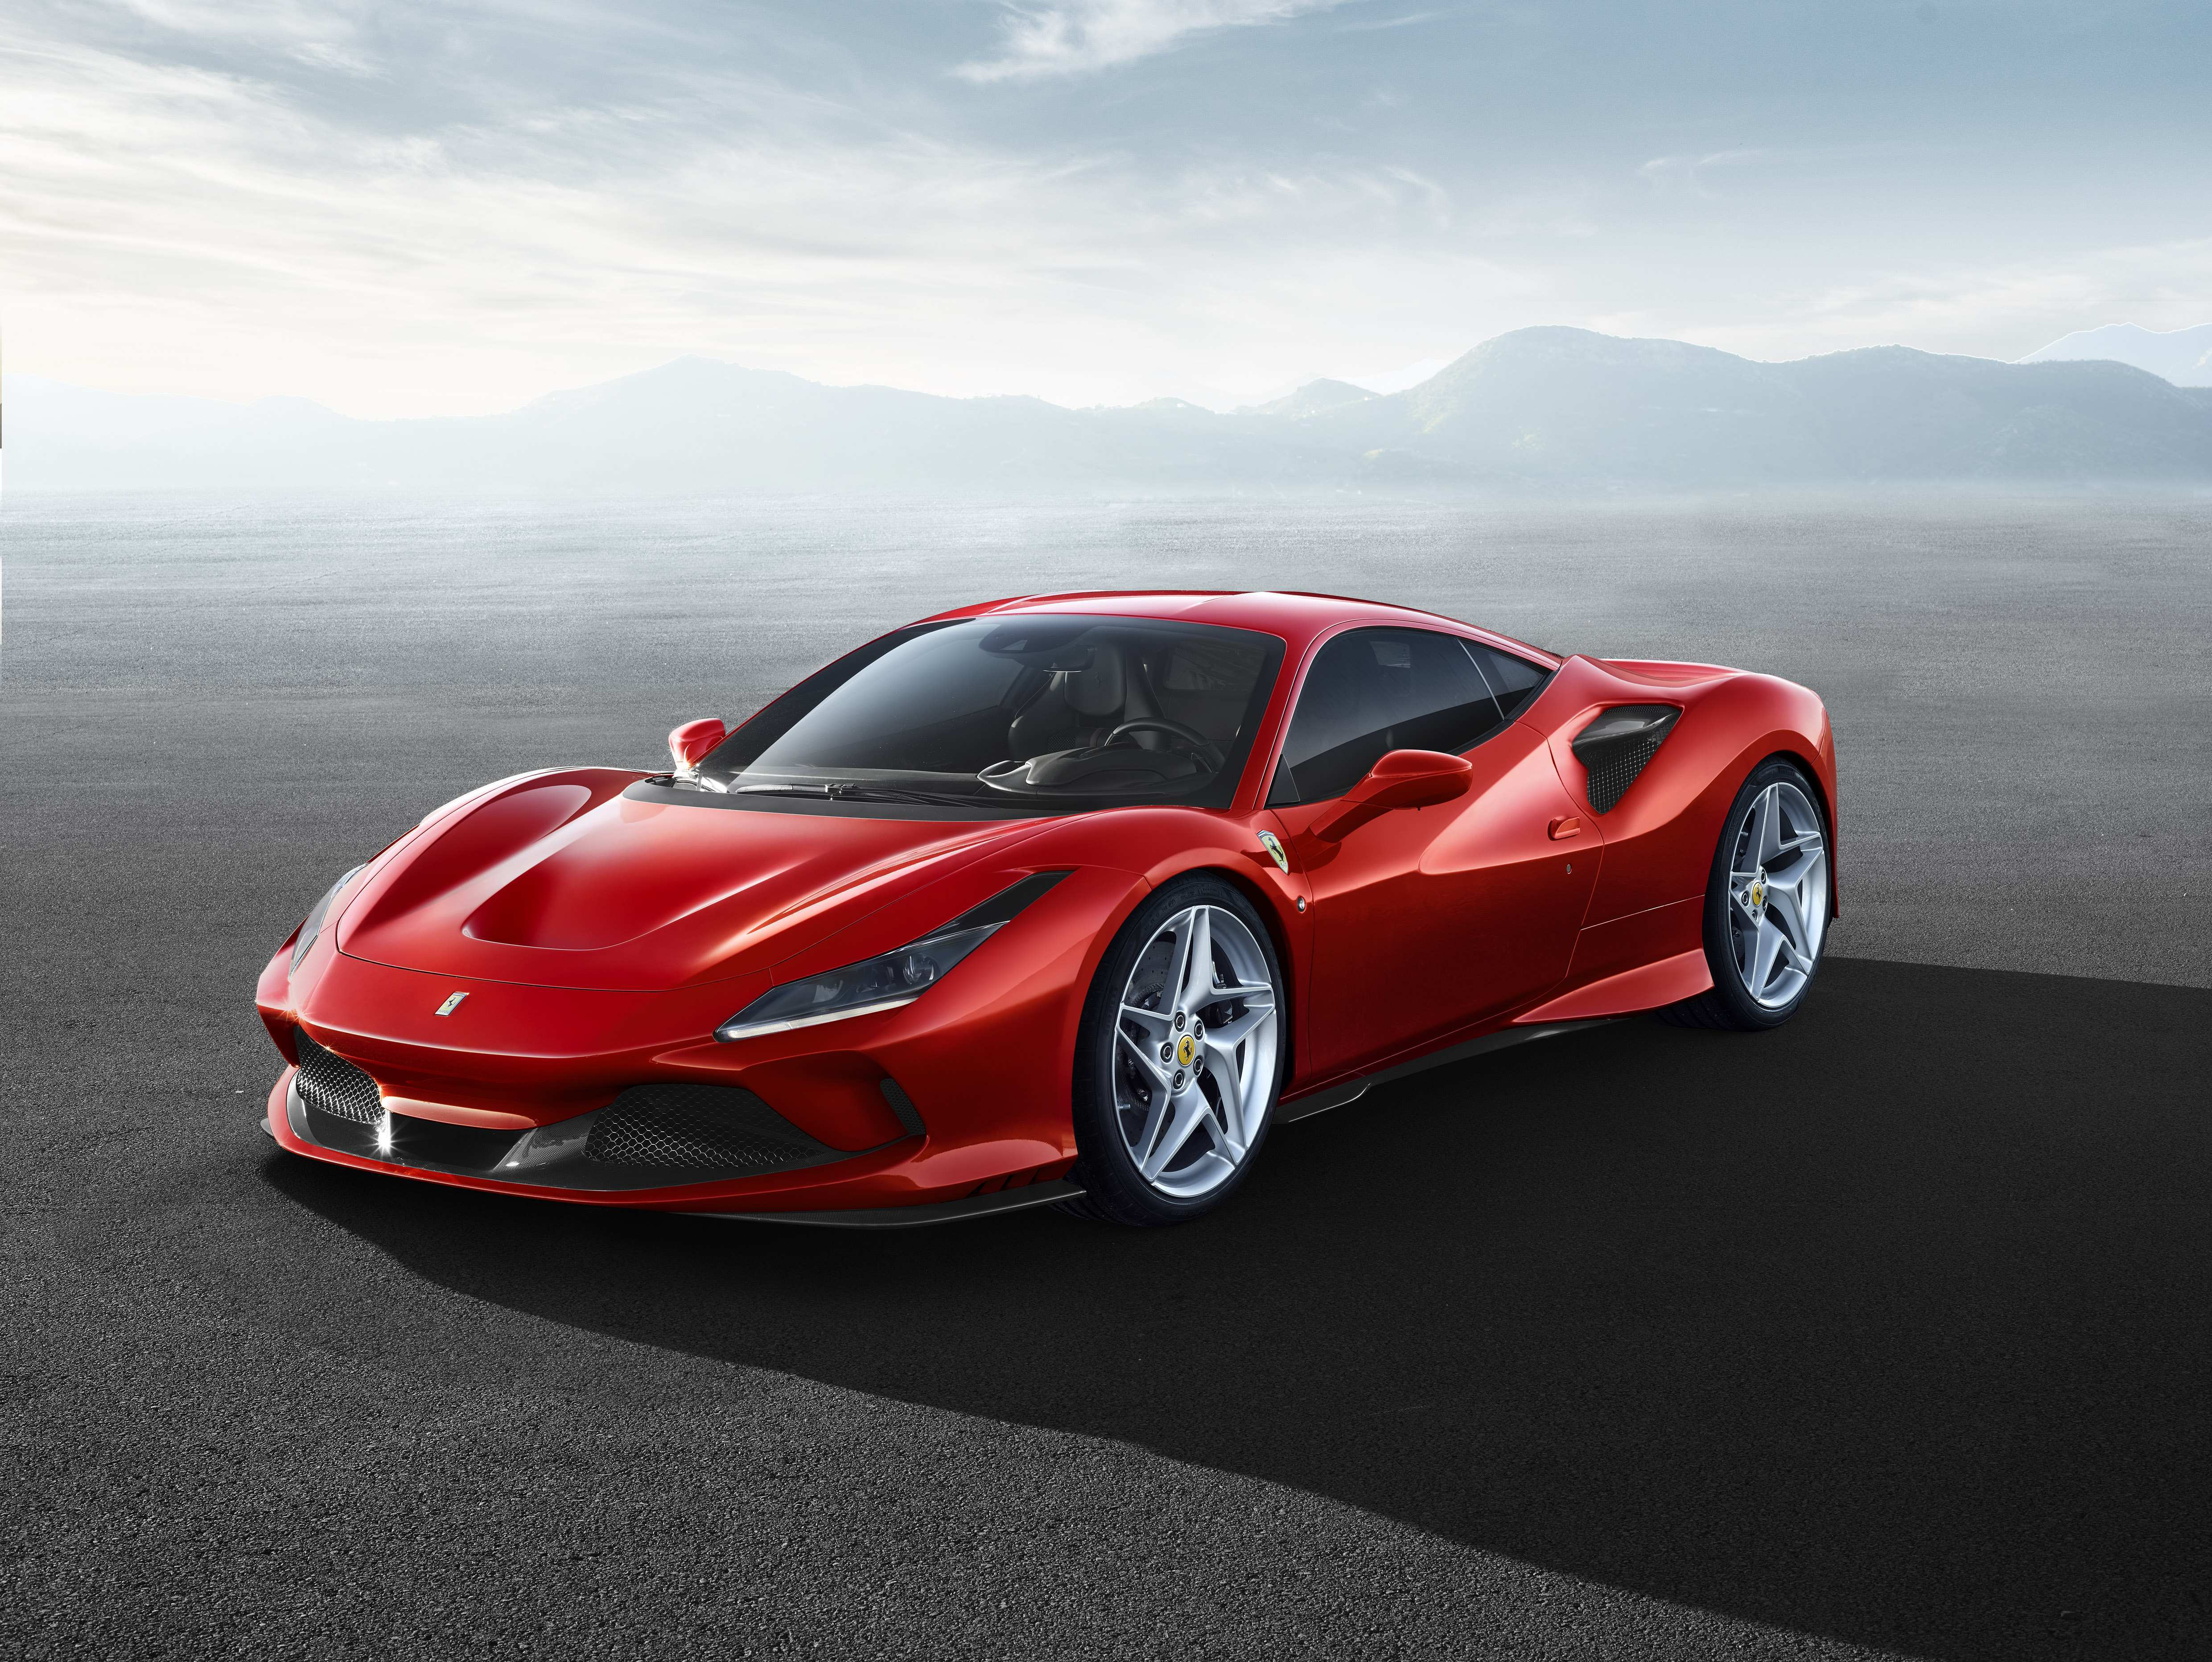 96 All New 2020 Ferrari 488 Gtb Specs And Review